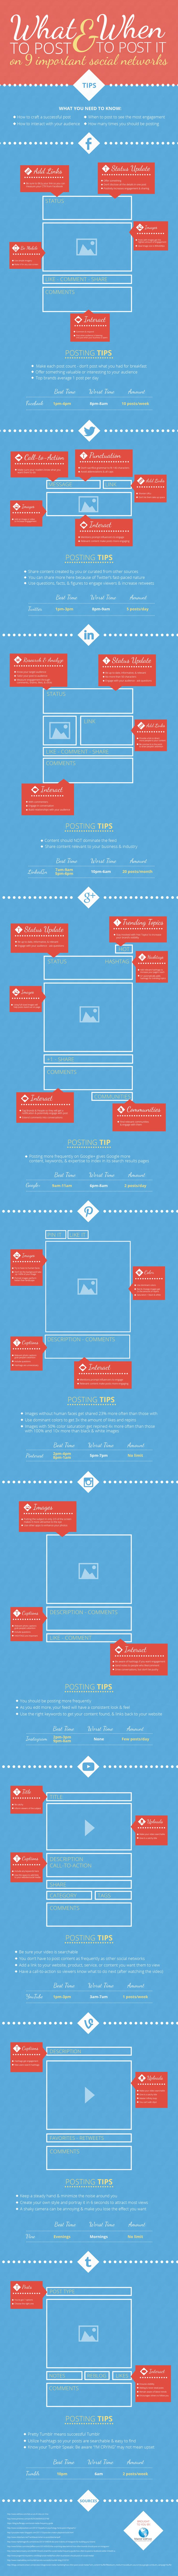 What to Post & When to Post it on 9 Social Networks [Infographic]